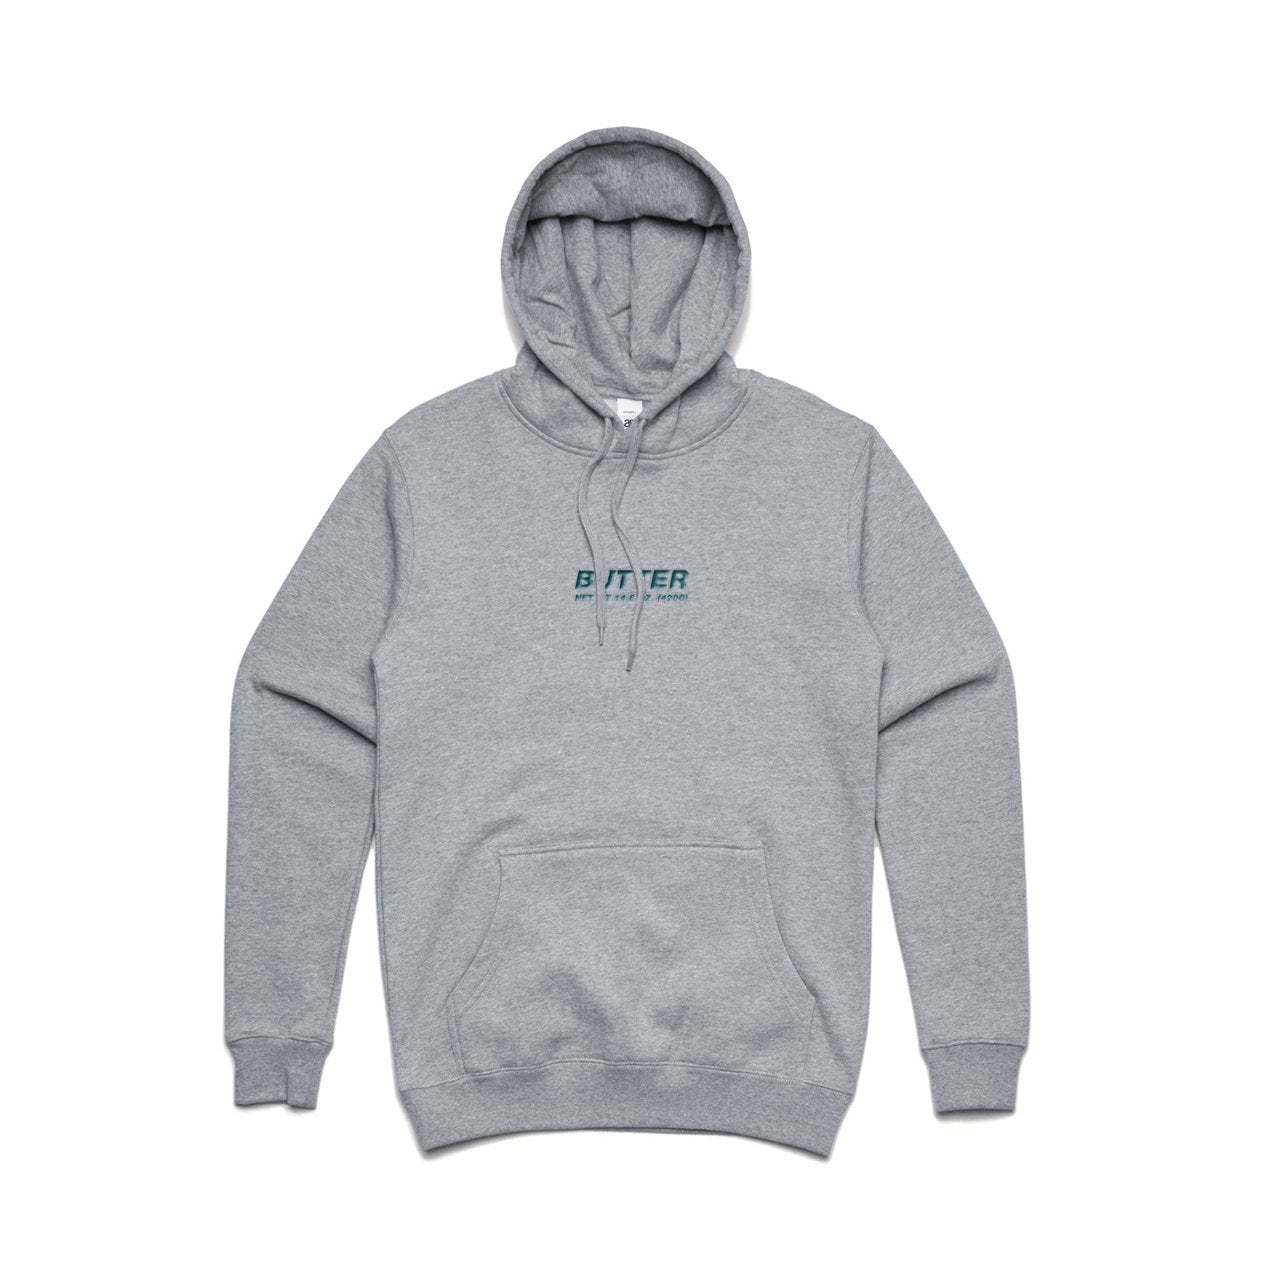 BUTTER CORE EMBROIDERED NET WEIGHT HOODIE GREEN/GREY